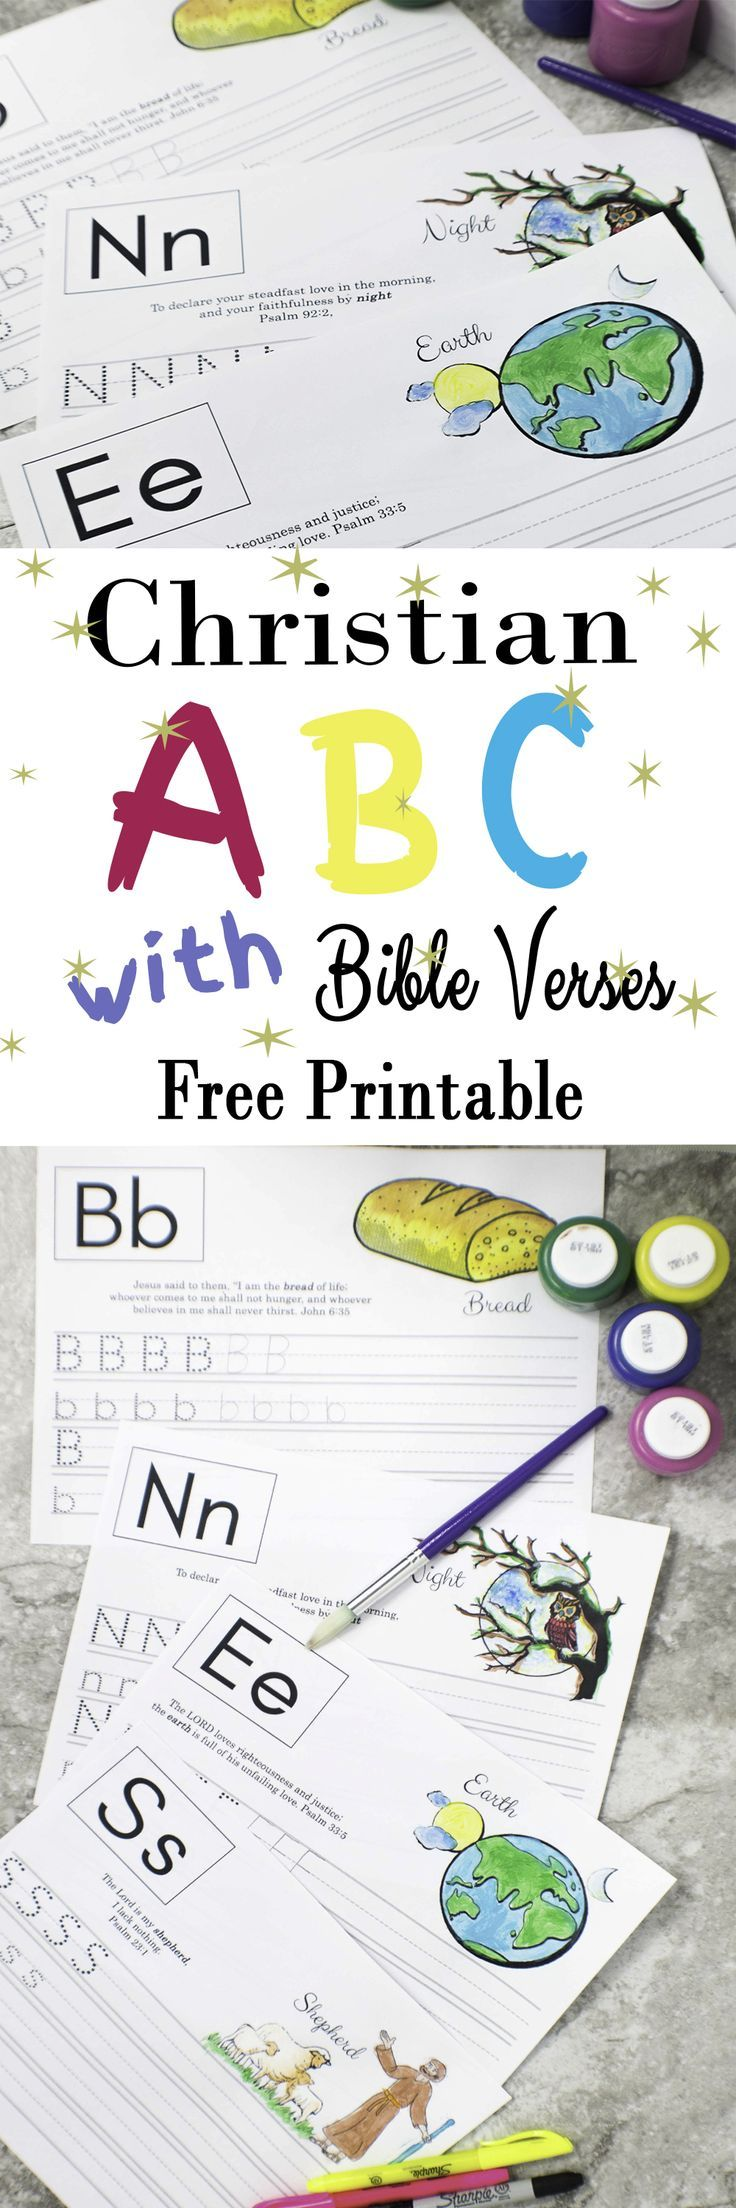 62 best bible activities for little ones images on pinterest